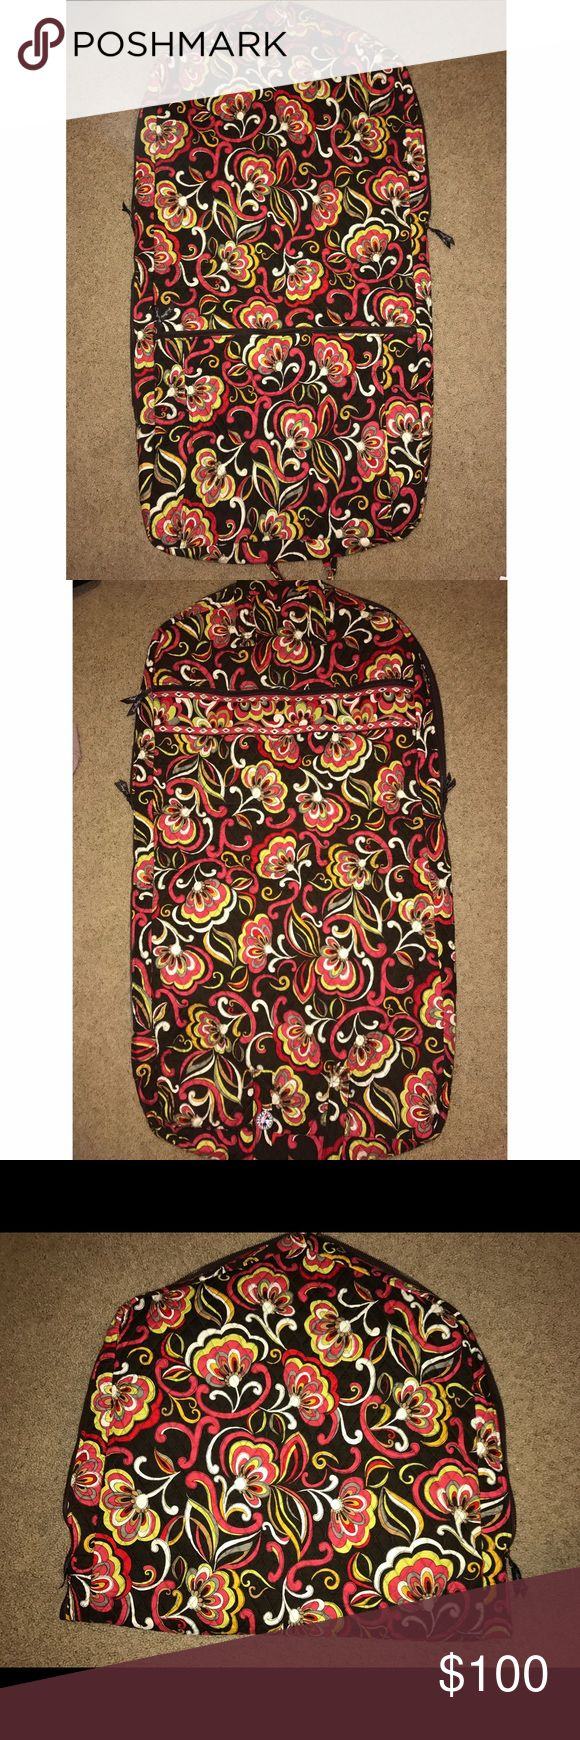 Vera Bradley Garment bag Vera Bradley on The Go garment bag                      ~    In retired pattern : Puccini                                             ~     Lots of room and very durable bag no signs of wear and tear // like new Vera Bradley Bags Travel Bags